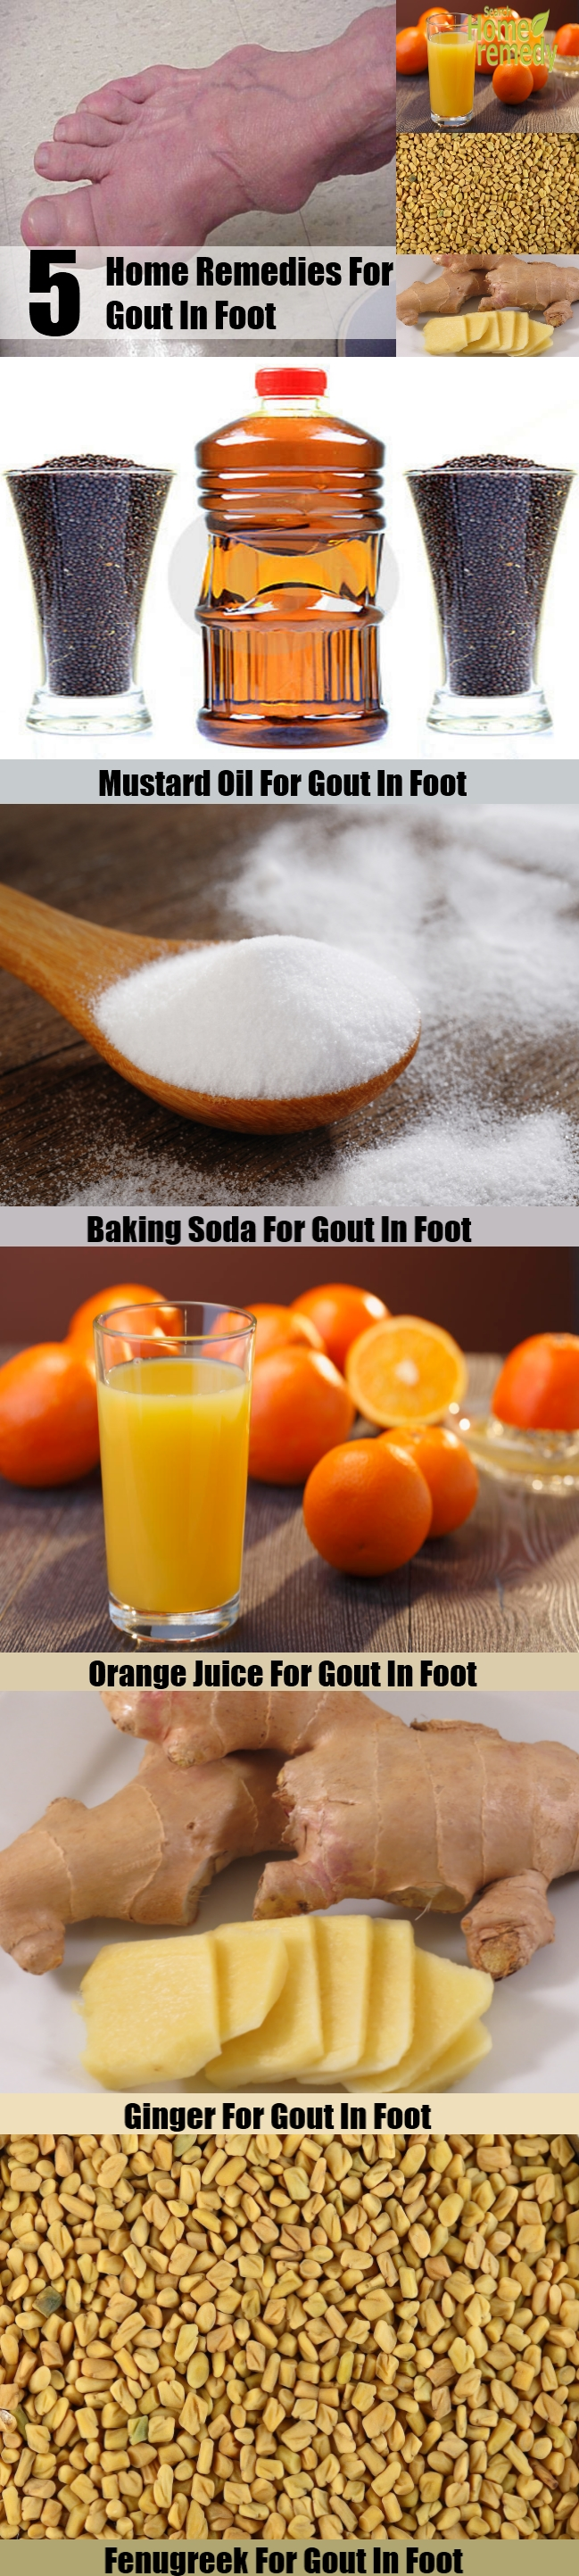 5 Home Remedies For Gout In Foot